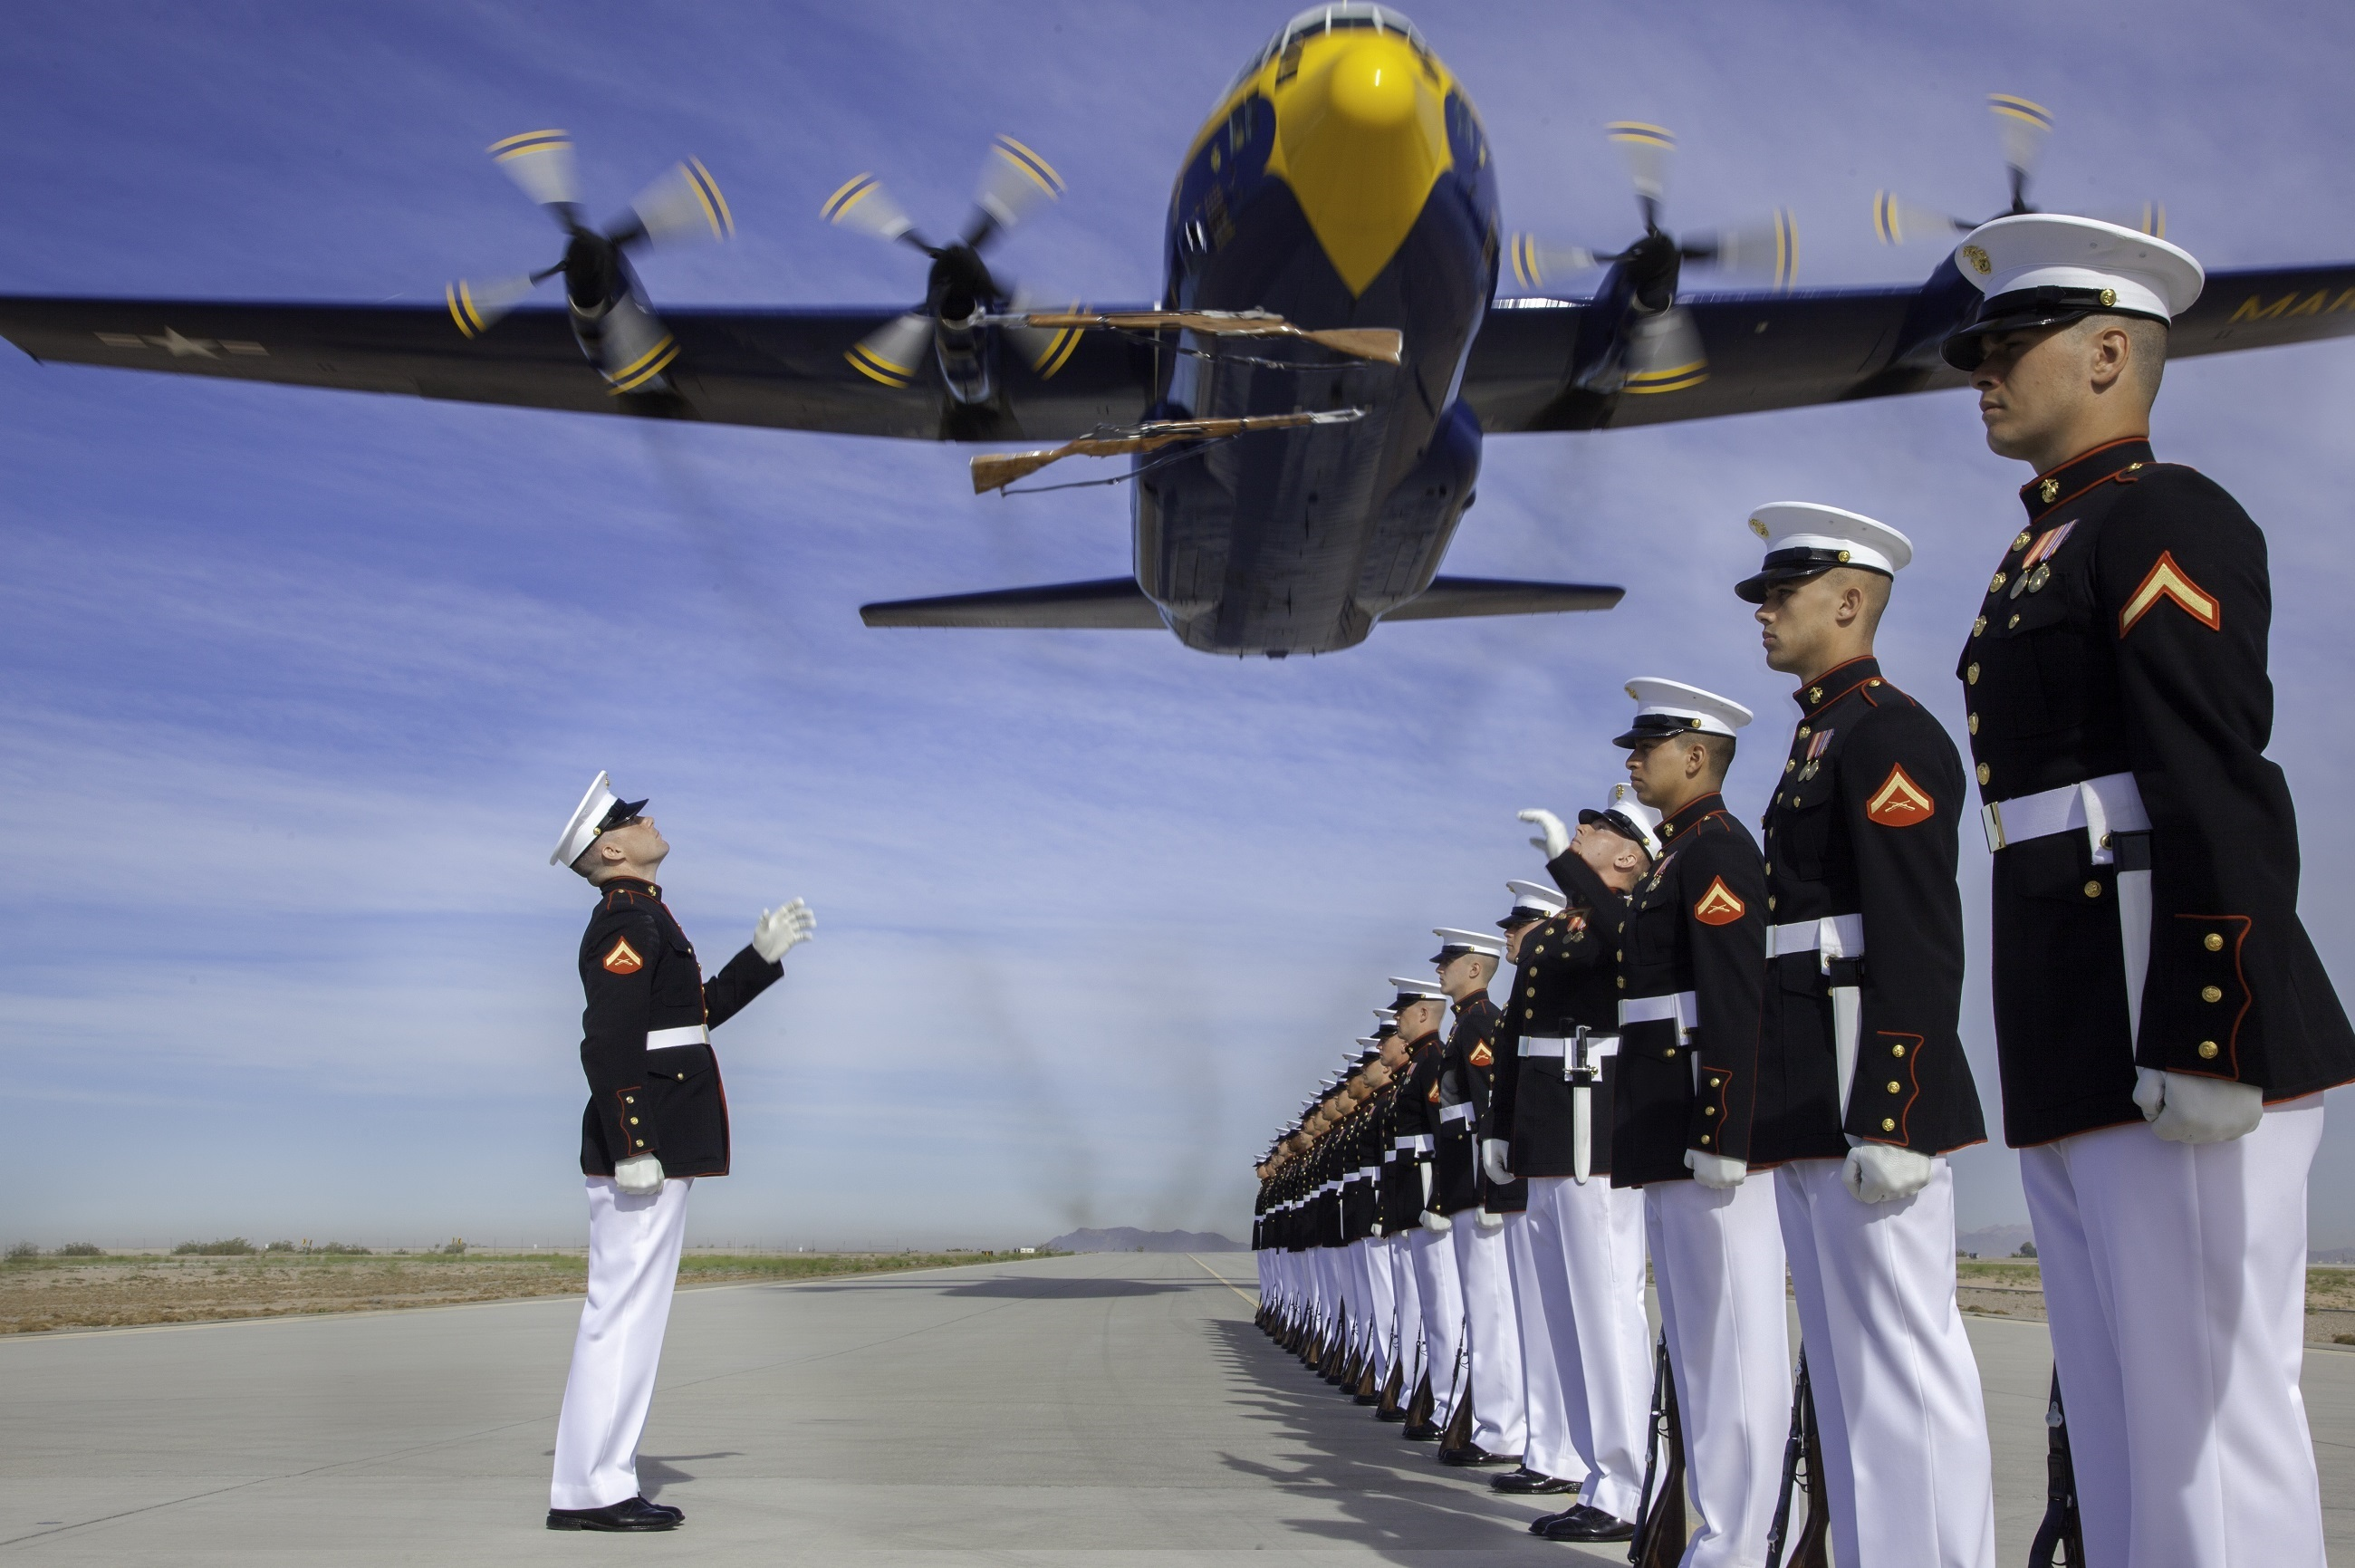 72 Marines Hd Wallpapers Background Images Wallpaper Abyss